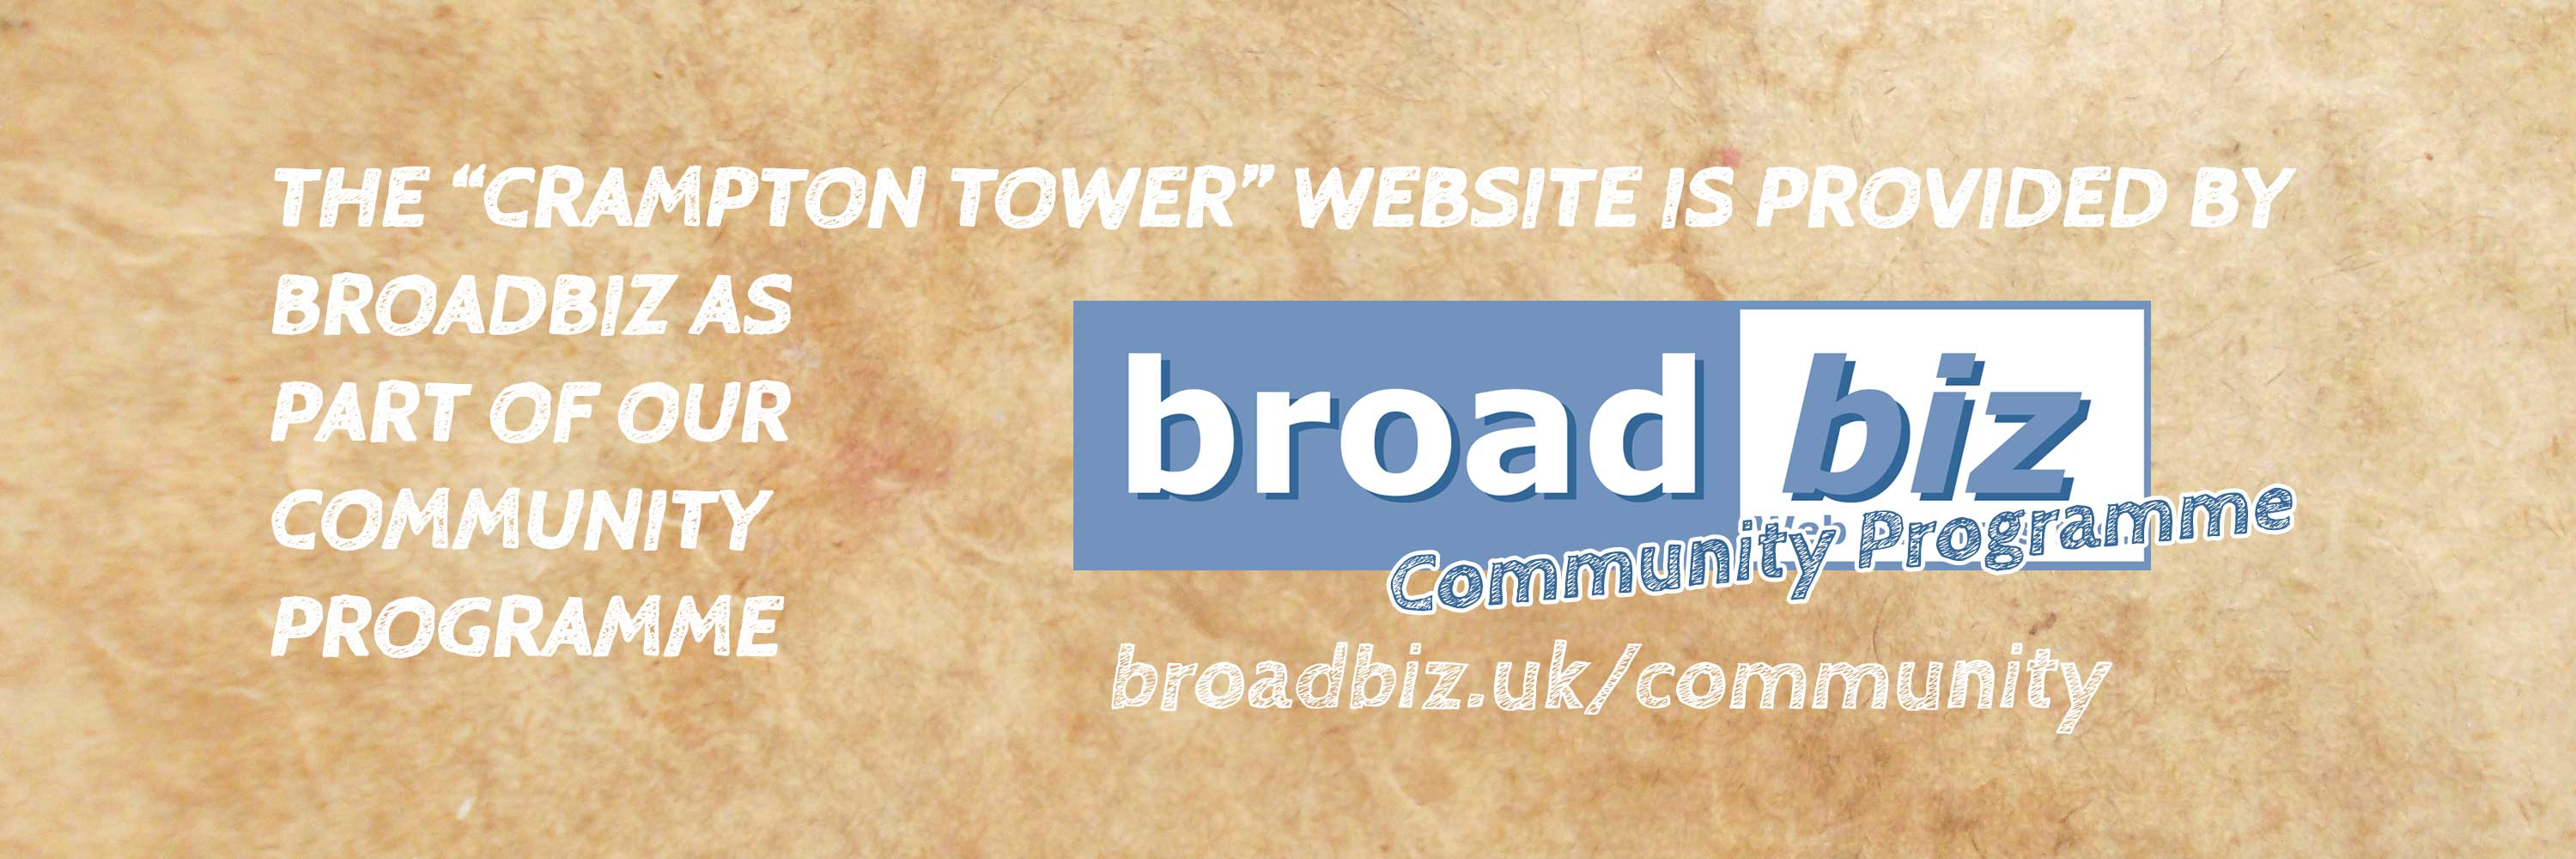 The Crampton Tower website is provided by Broadbiz as part of our Community Programme